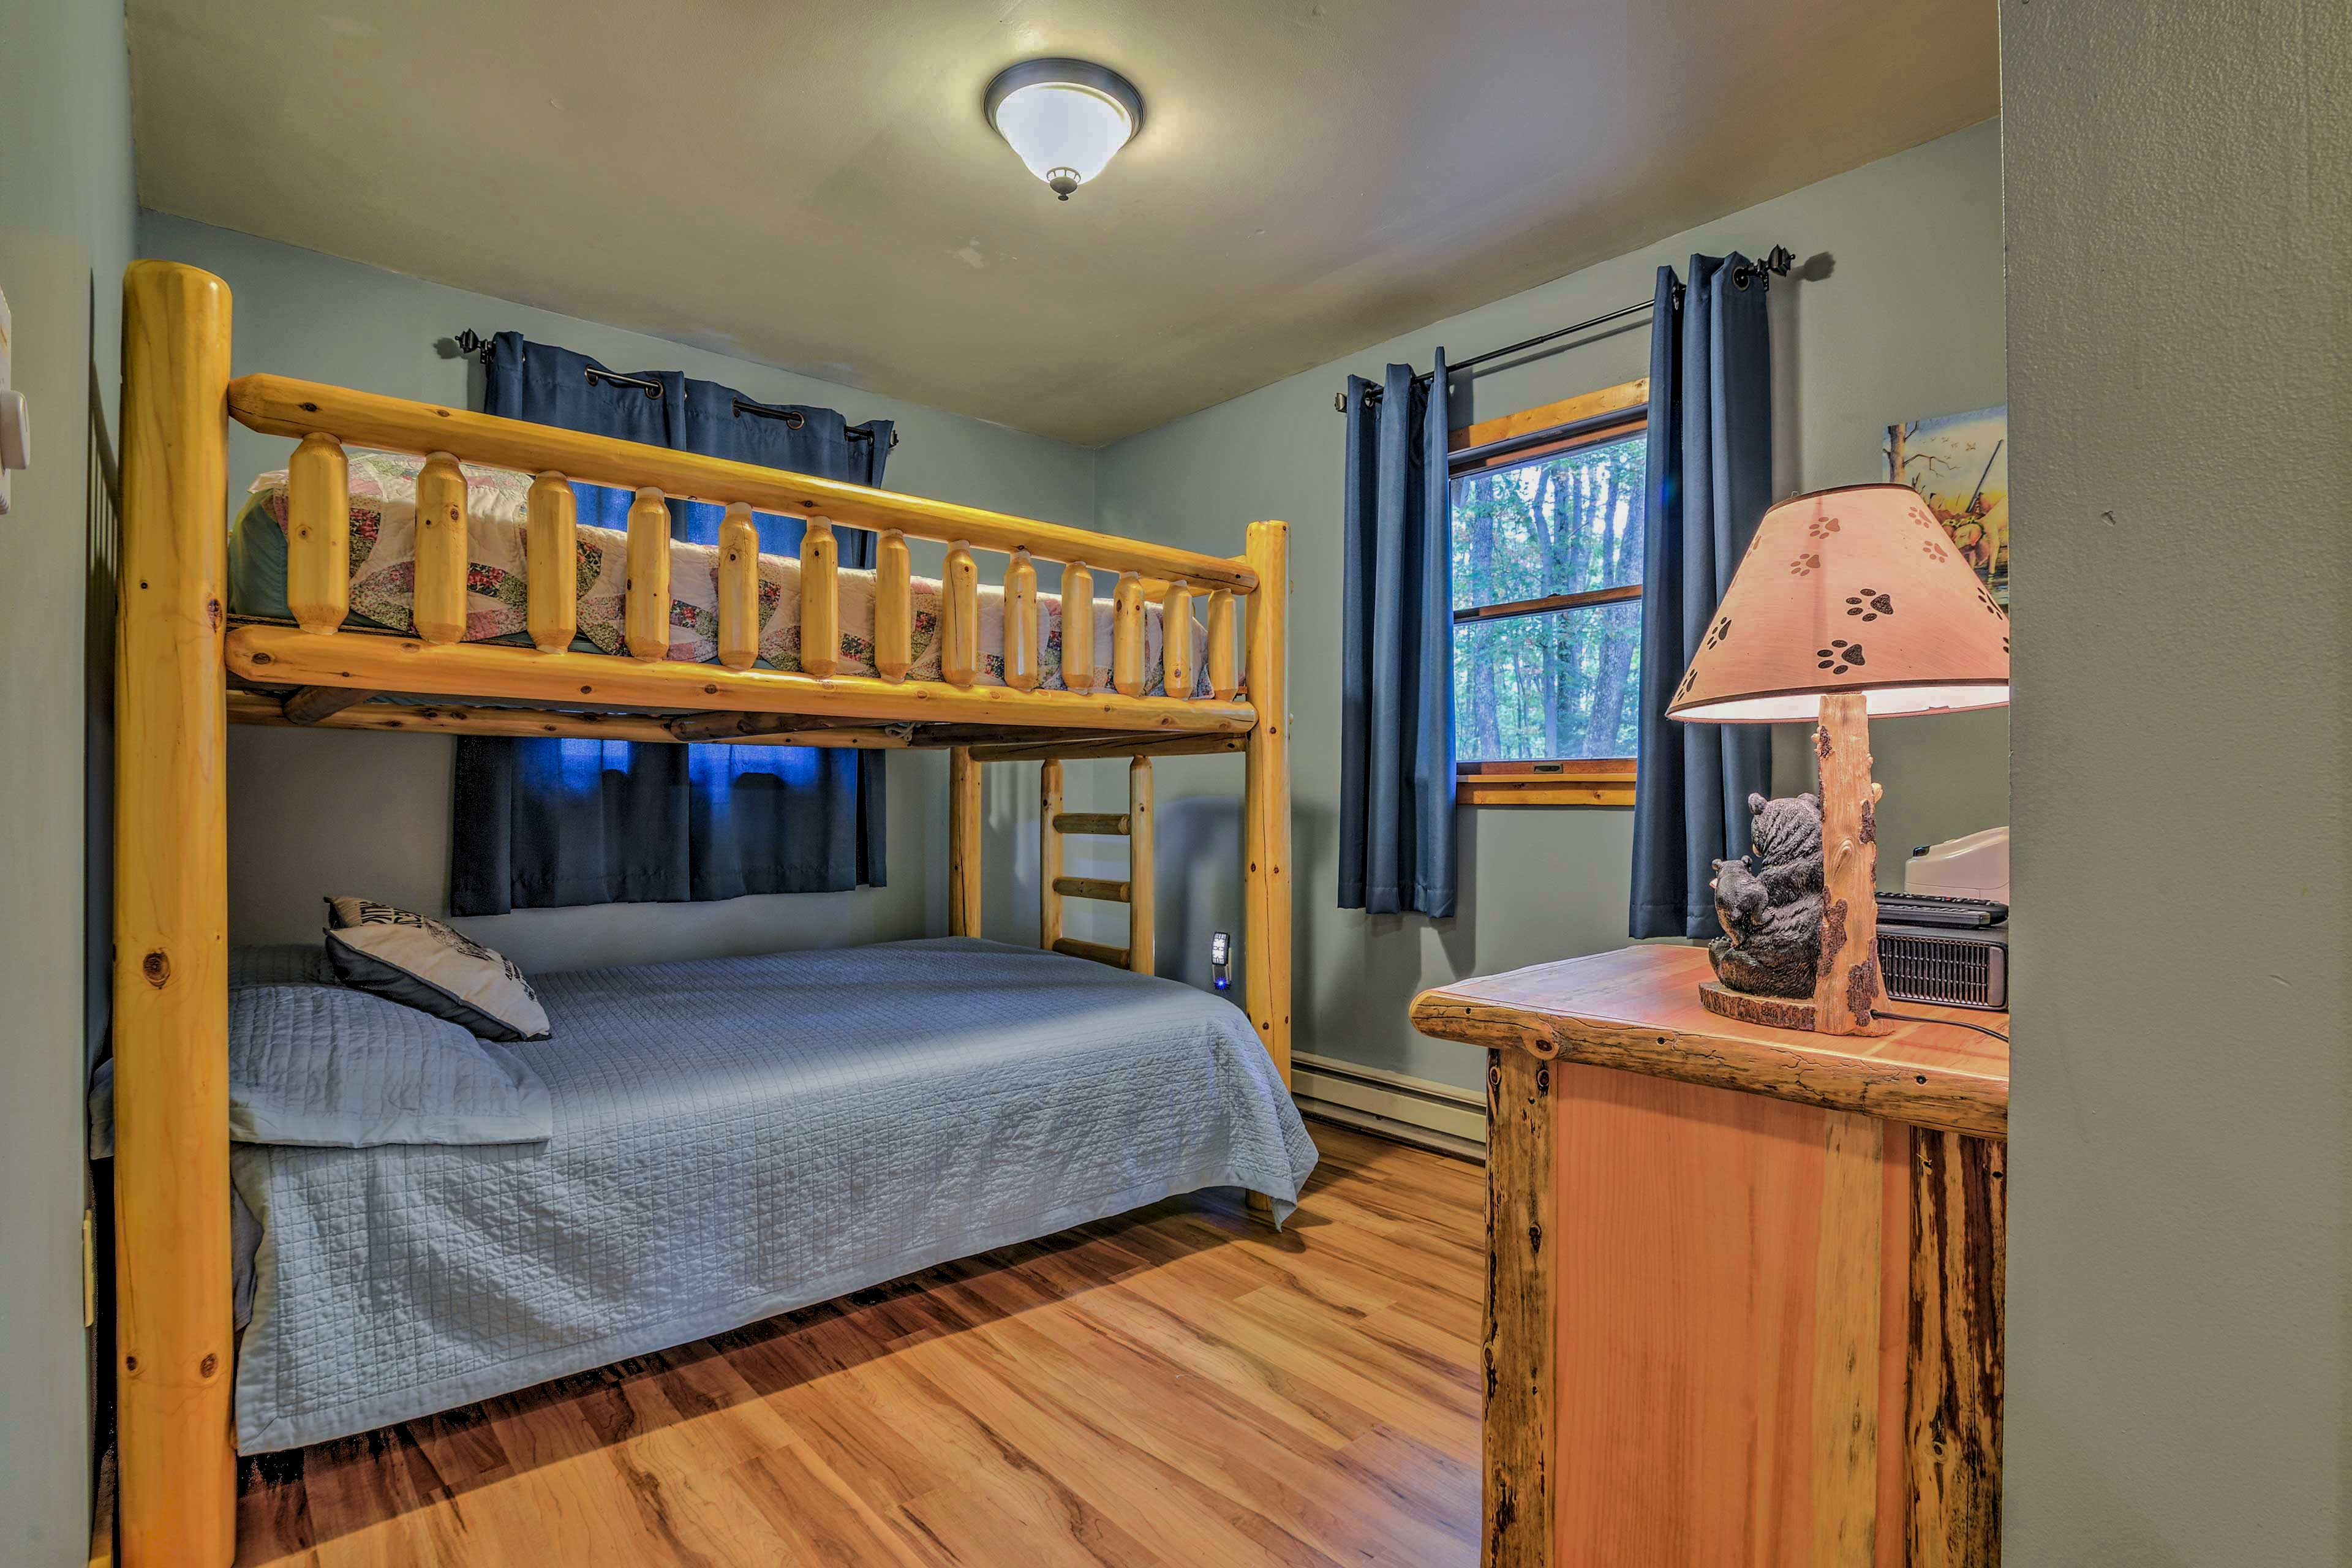 The third bedroom is outfitted with a queen bunk bed.